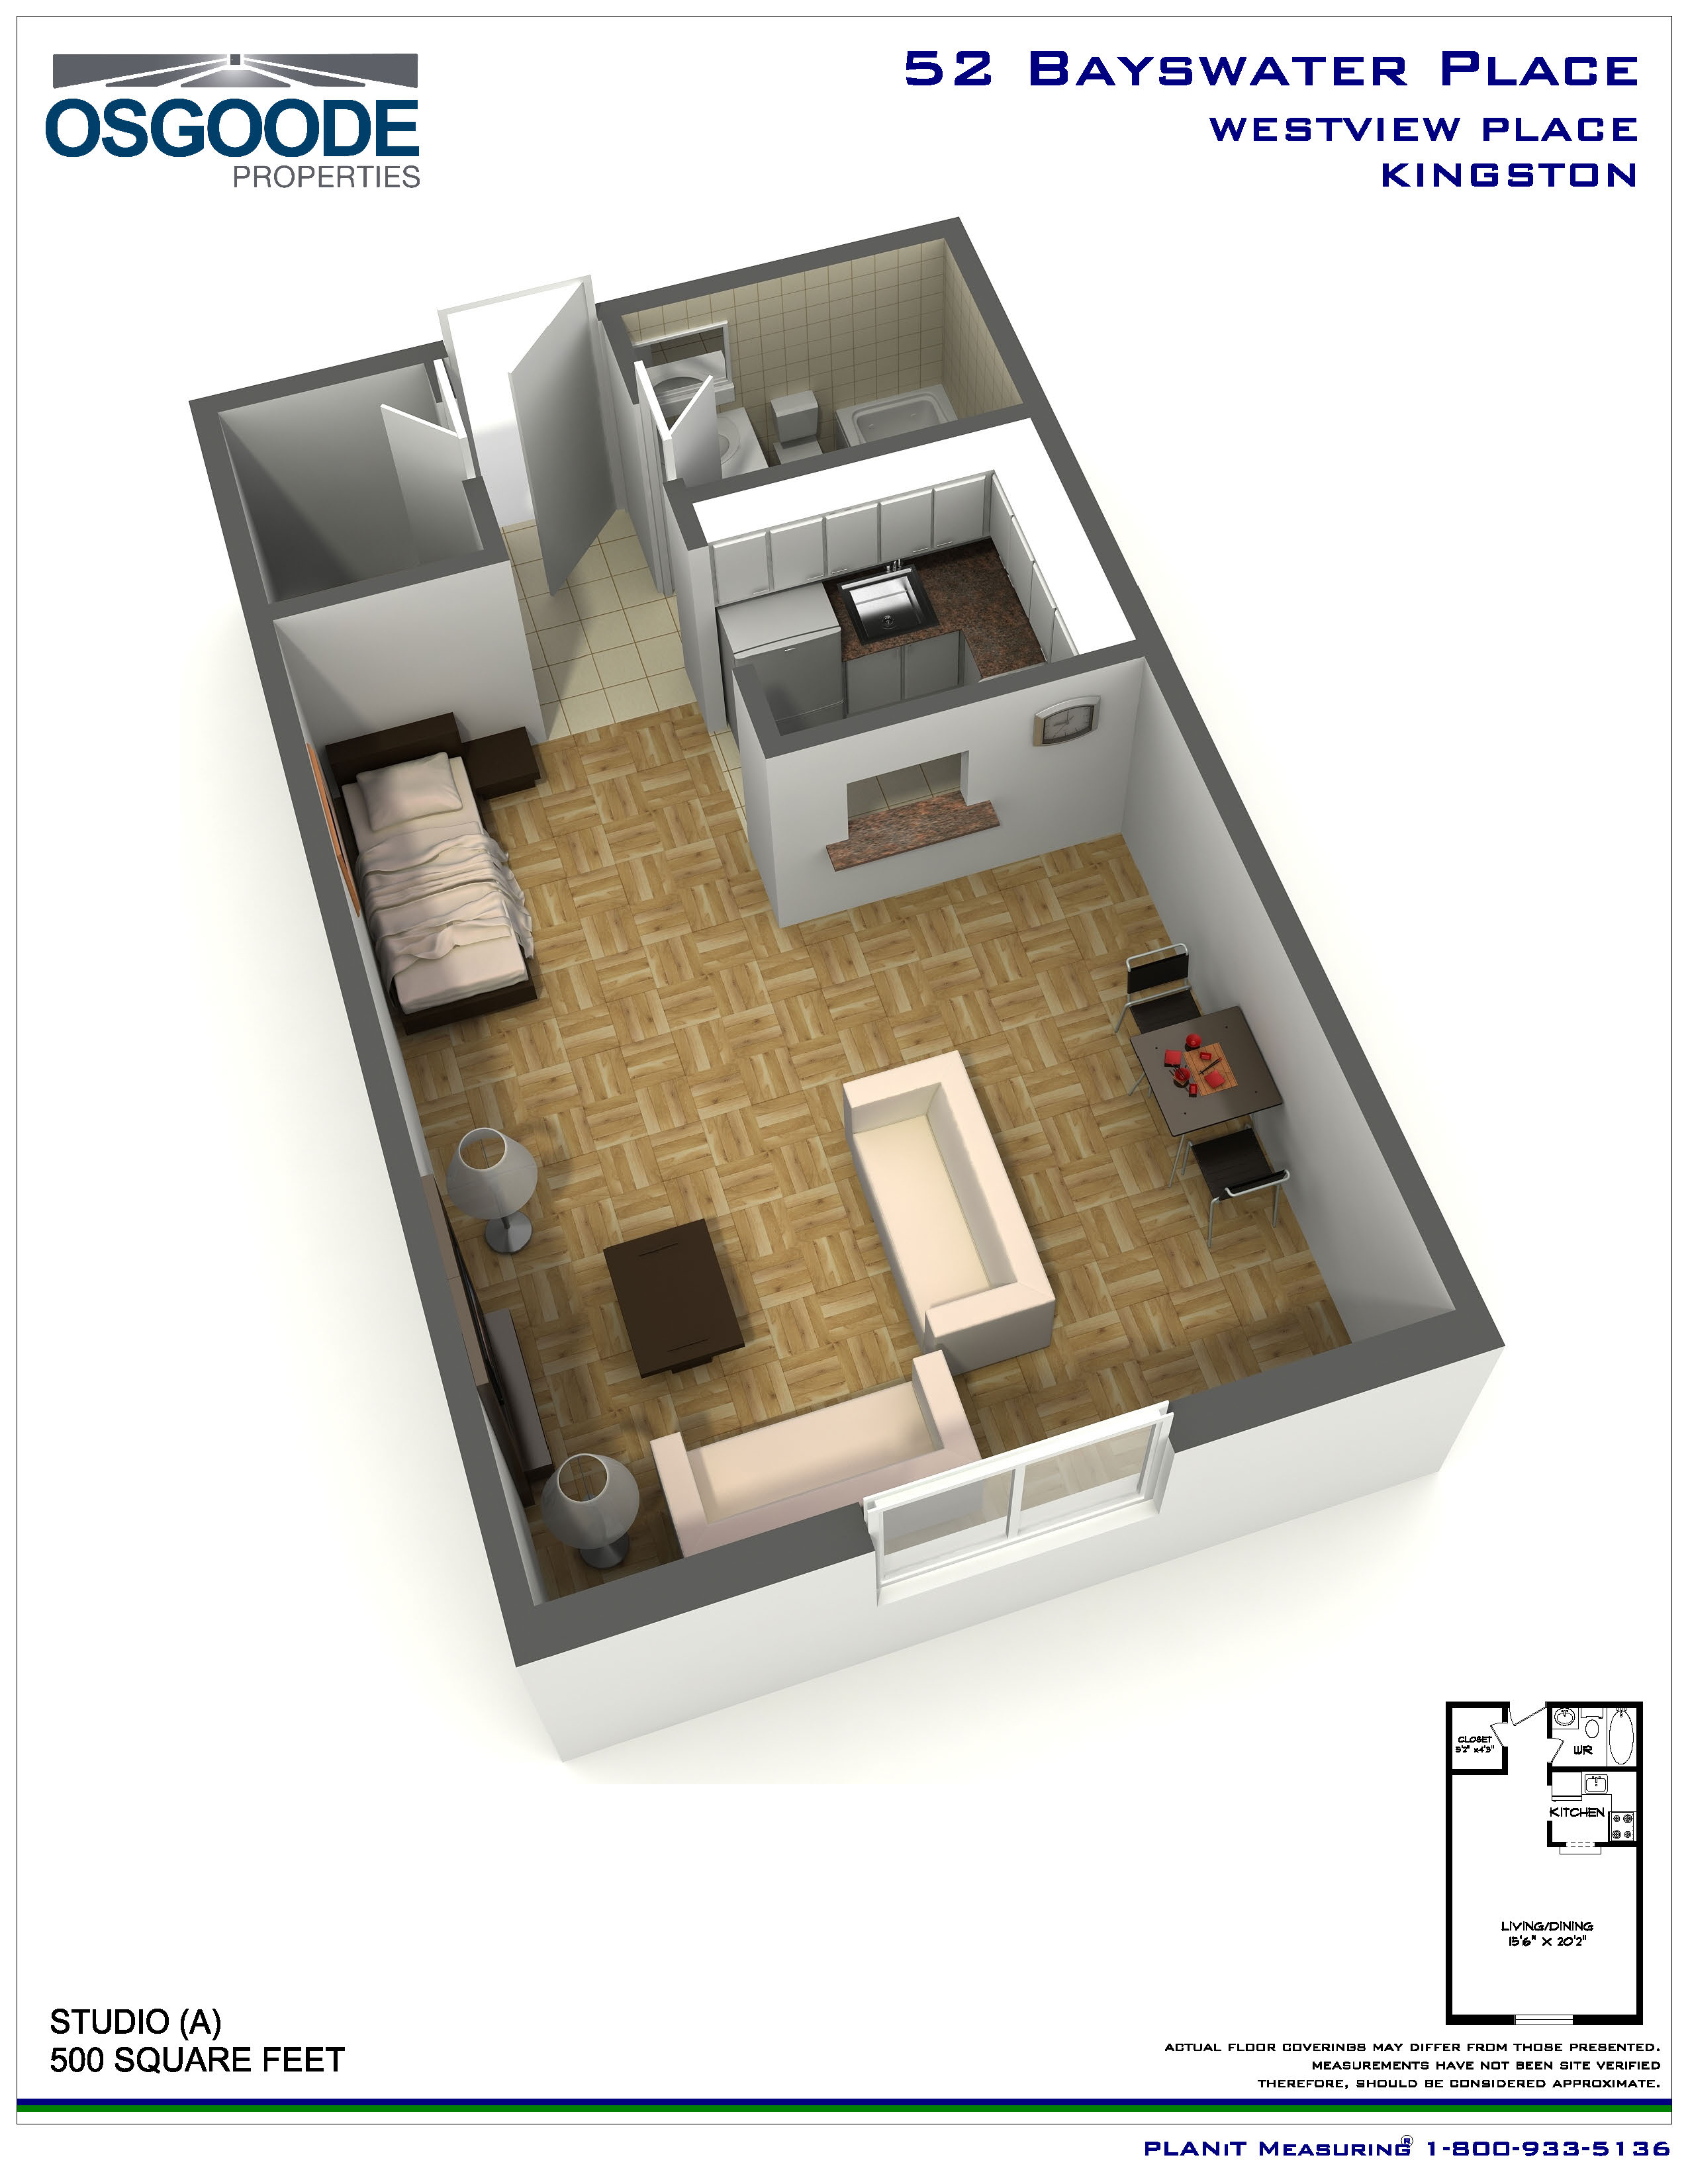 Osgoode Properties Has Rental Apartments At Westview Place